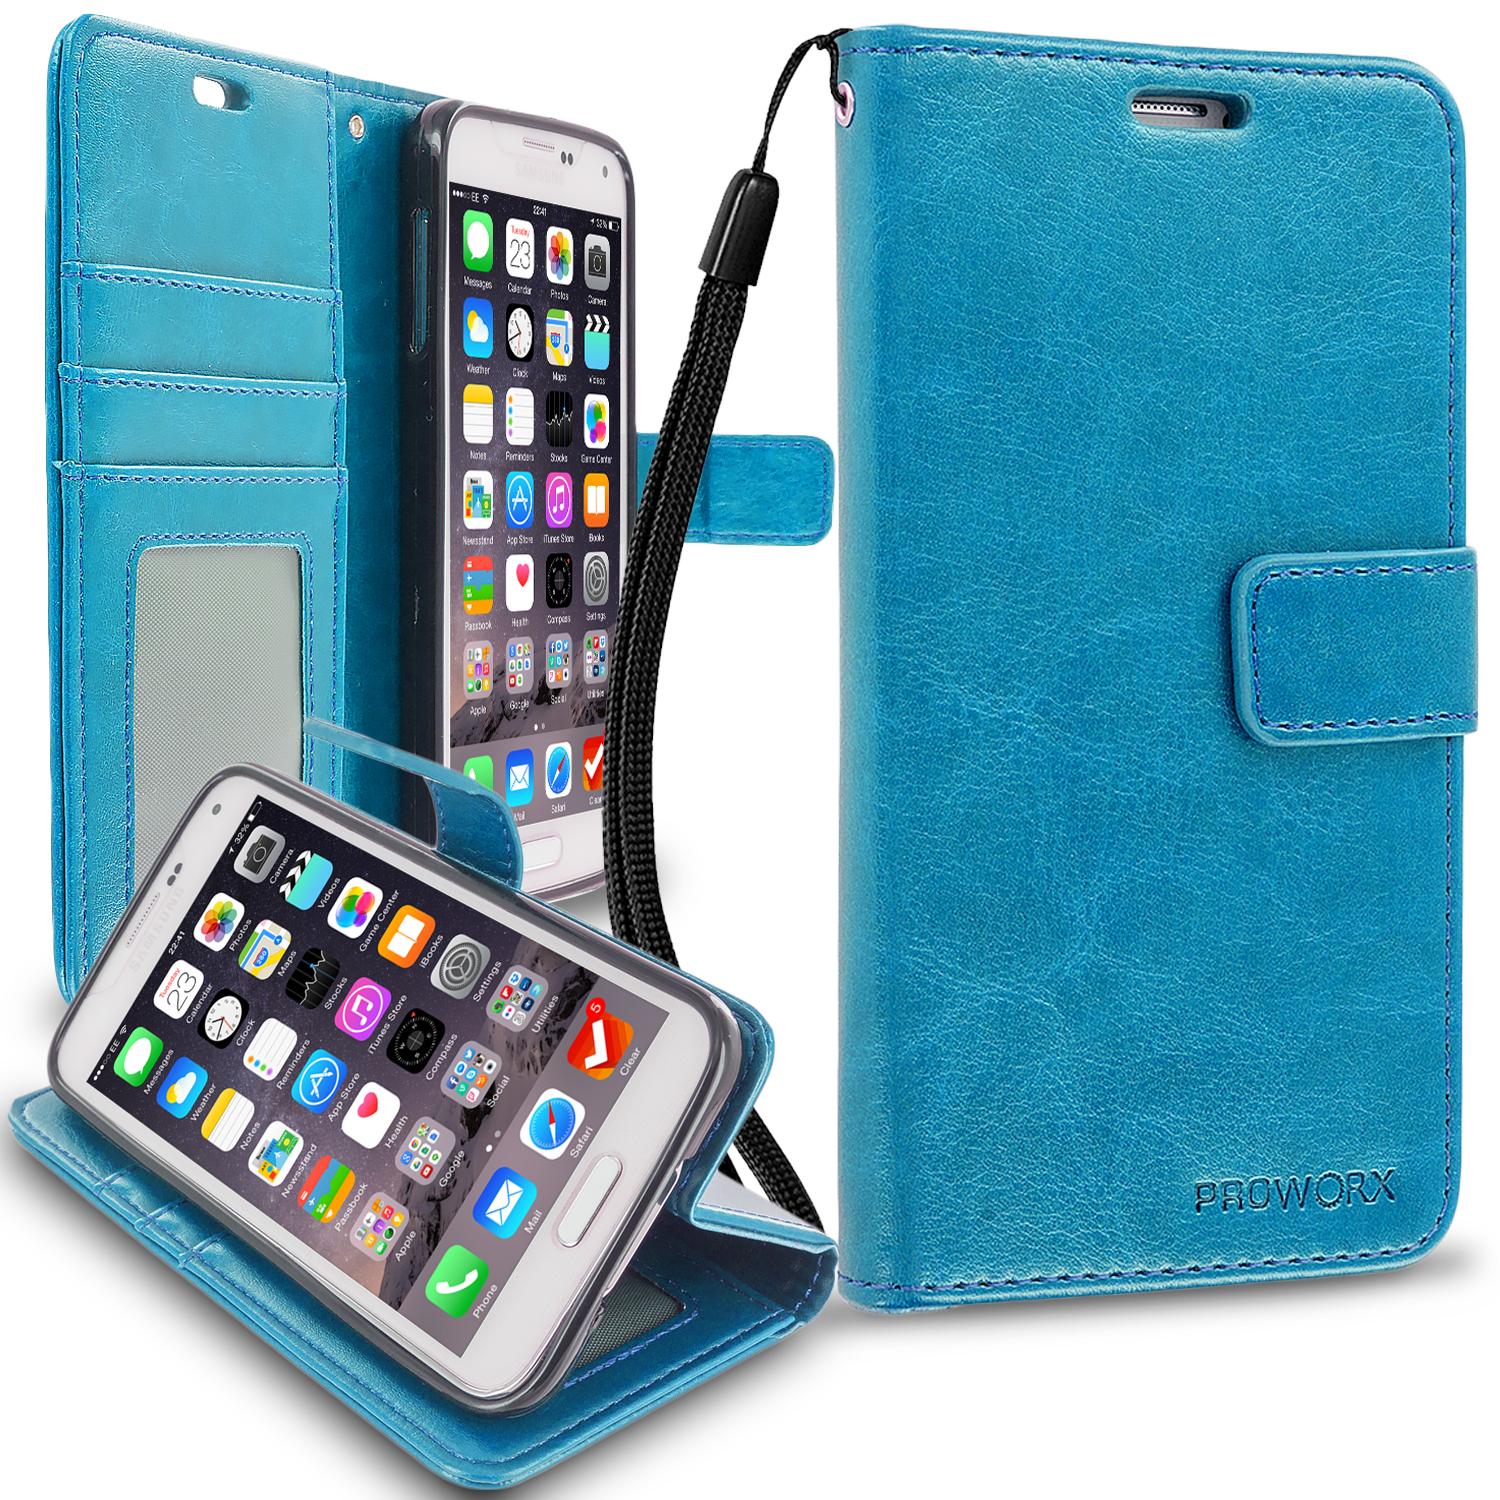 Samsung Galaxy S5 Baby Blue ProWorx Wallet Case Luxury PU Leather Case Cover With Card Slots & Stand